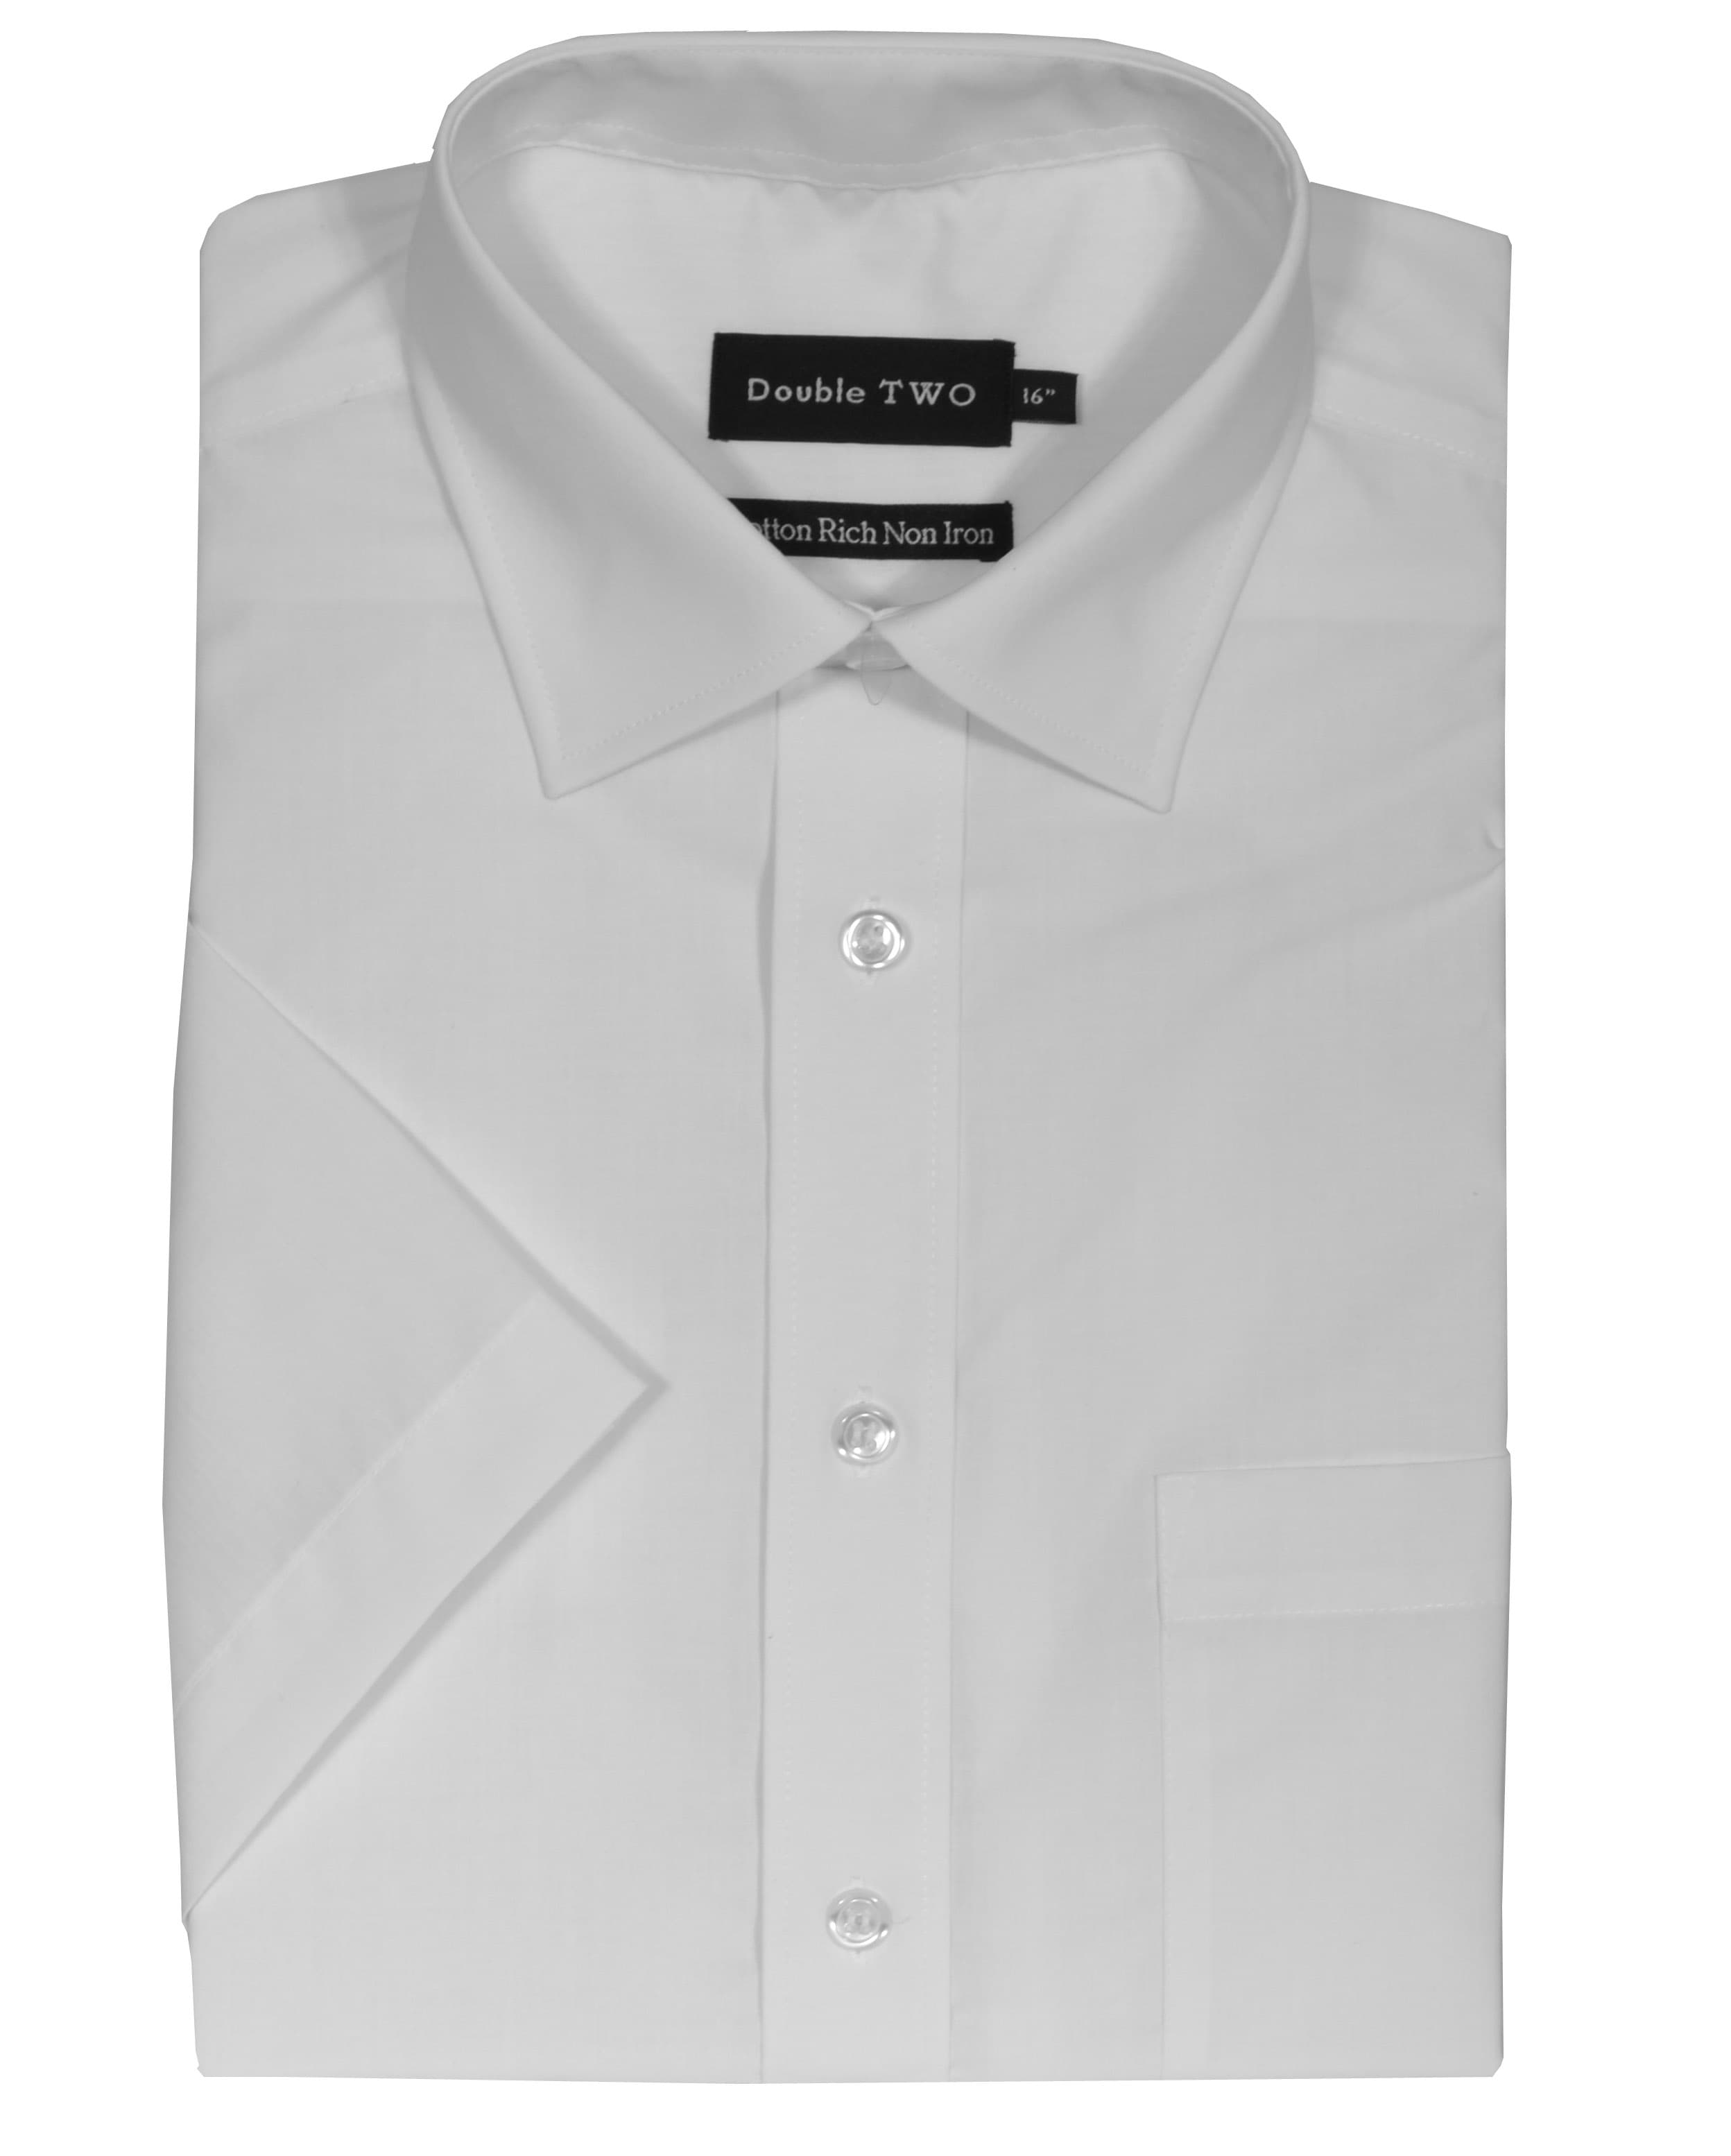 Non-Iron Cotton Pinpoint Straight Collar Short Sleeve Dress Shirt Non-Iron Cotton Pinpoint Straight Collar Short Sleeve Dress Shirt. $ Buy 1 Shirt, Get The 2nd 50% Off. Maintain a sharp, crisp look all day long in our non-iron dress shirts. Designed to resist wrinkles, our collection of men's non-iron shirts are both stylish and.